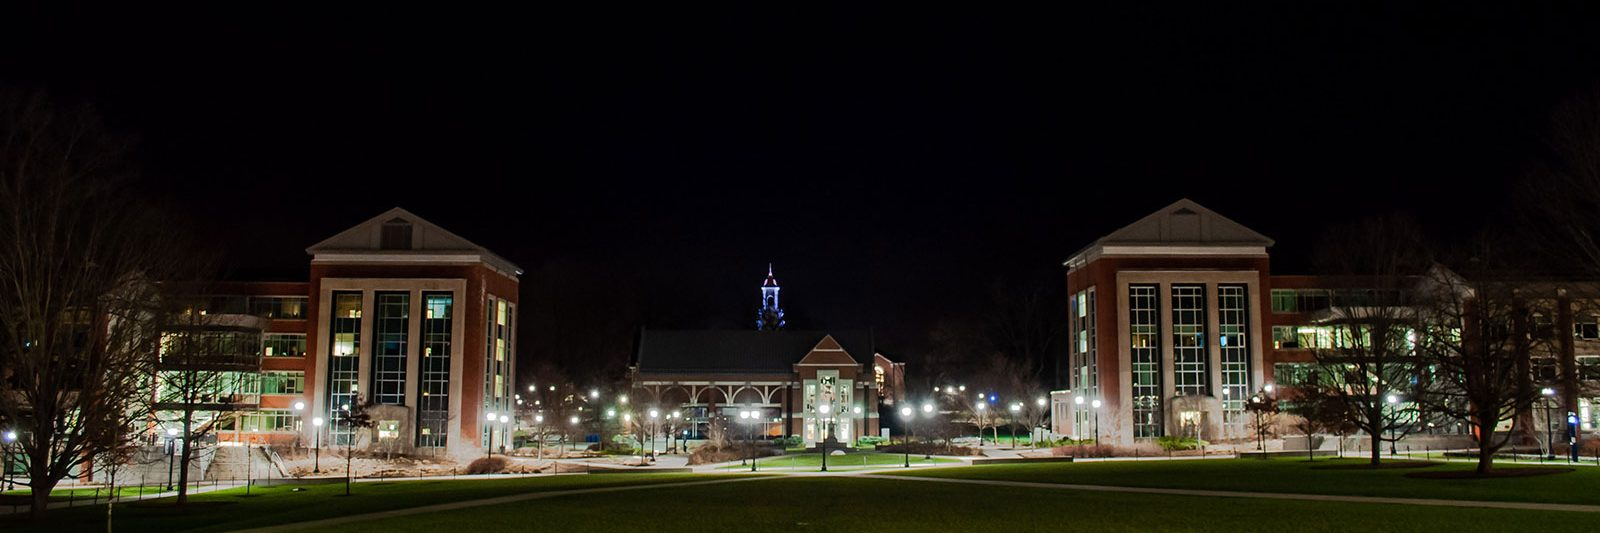 UConn Storrs mall at night.